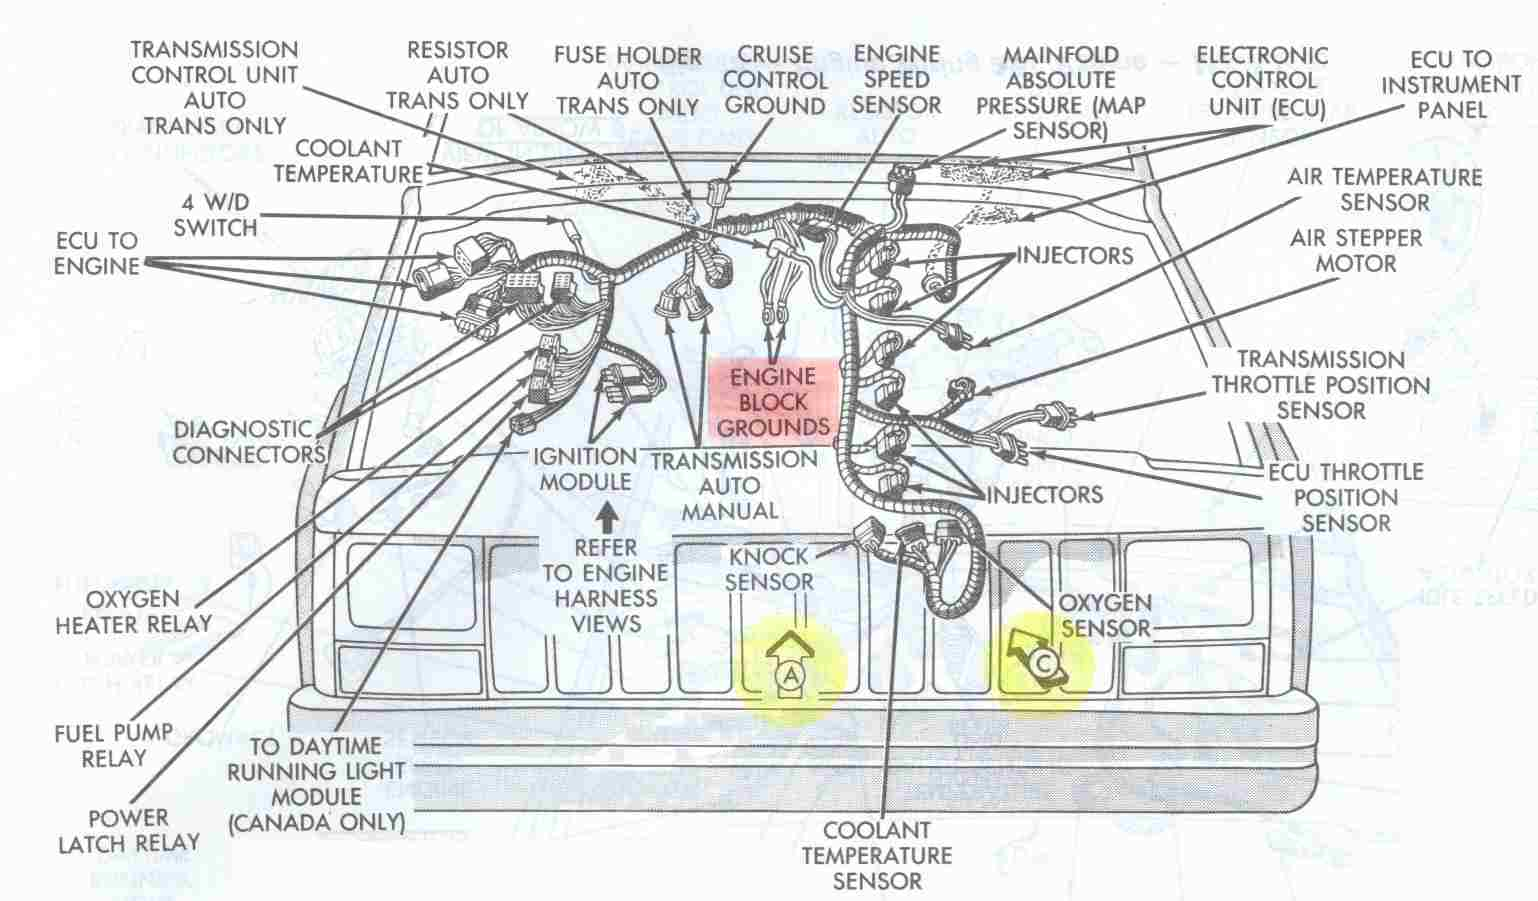 2001 jeep grand cherokee headlight wiring harness - show wiring diagram  space - space.controversoquotidiano.it  controversoquotidiano.it